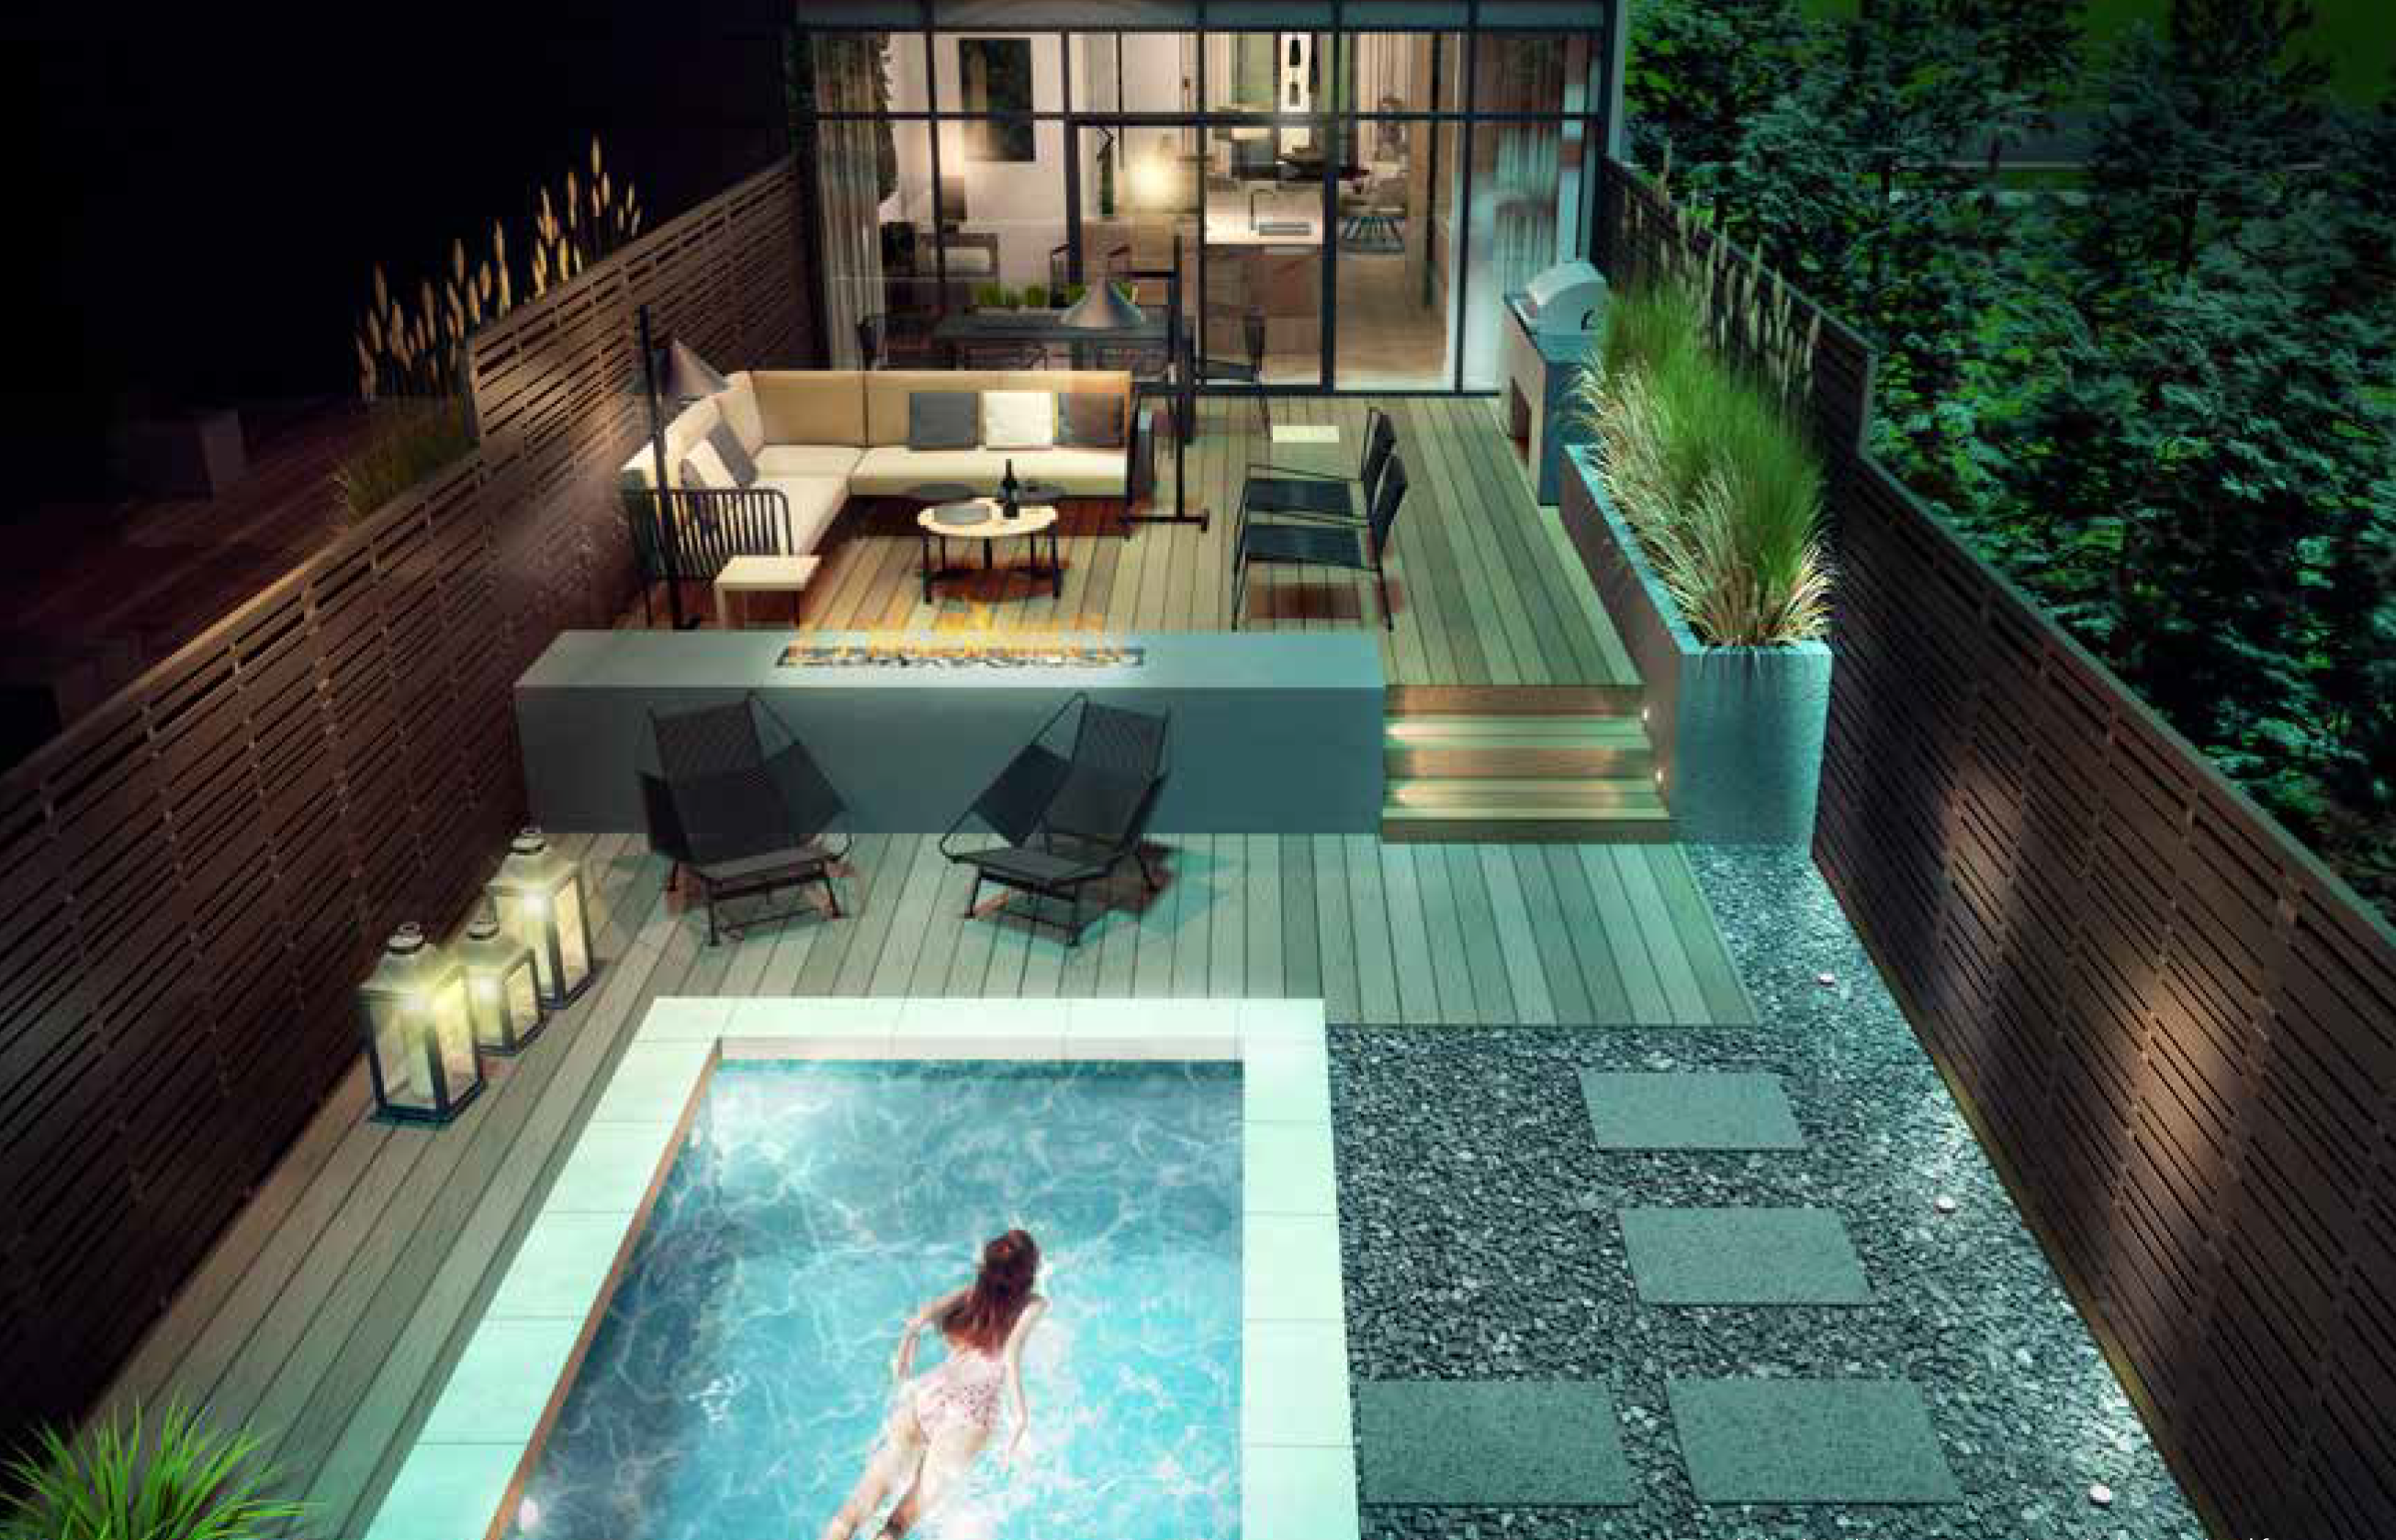 ESTATES ON BAYVIEW - PRIVATE TERRACE - CONTACT YOSSI KAPLAN